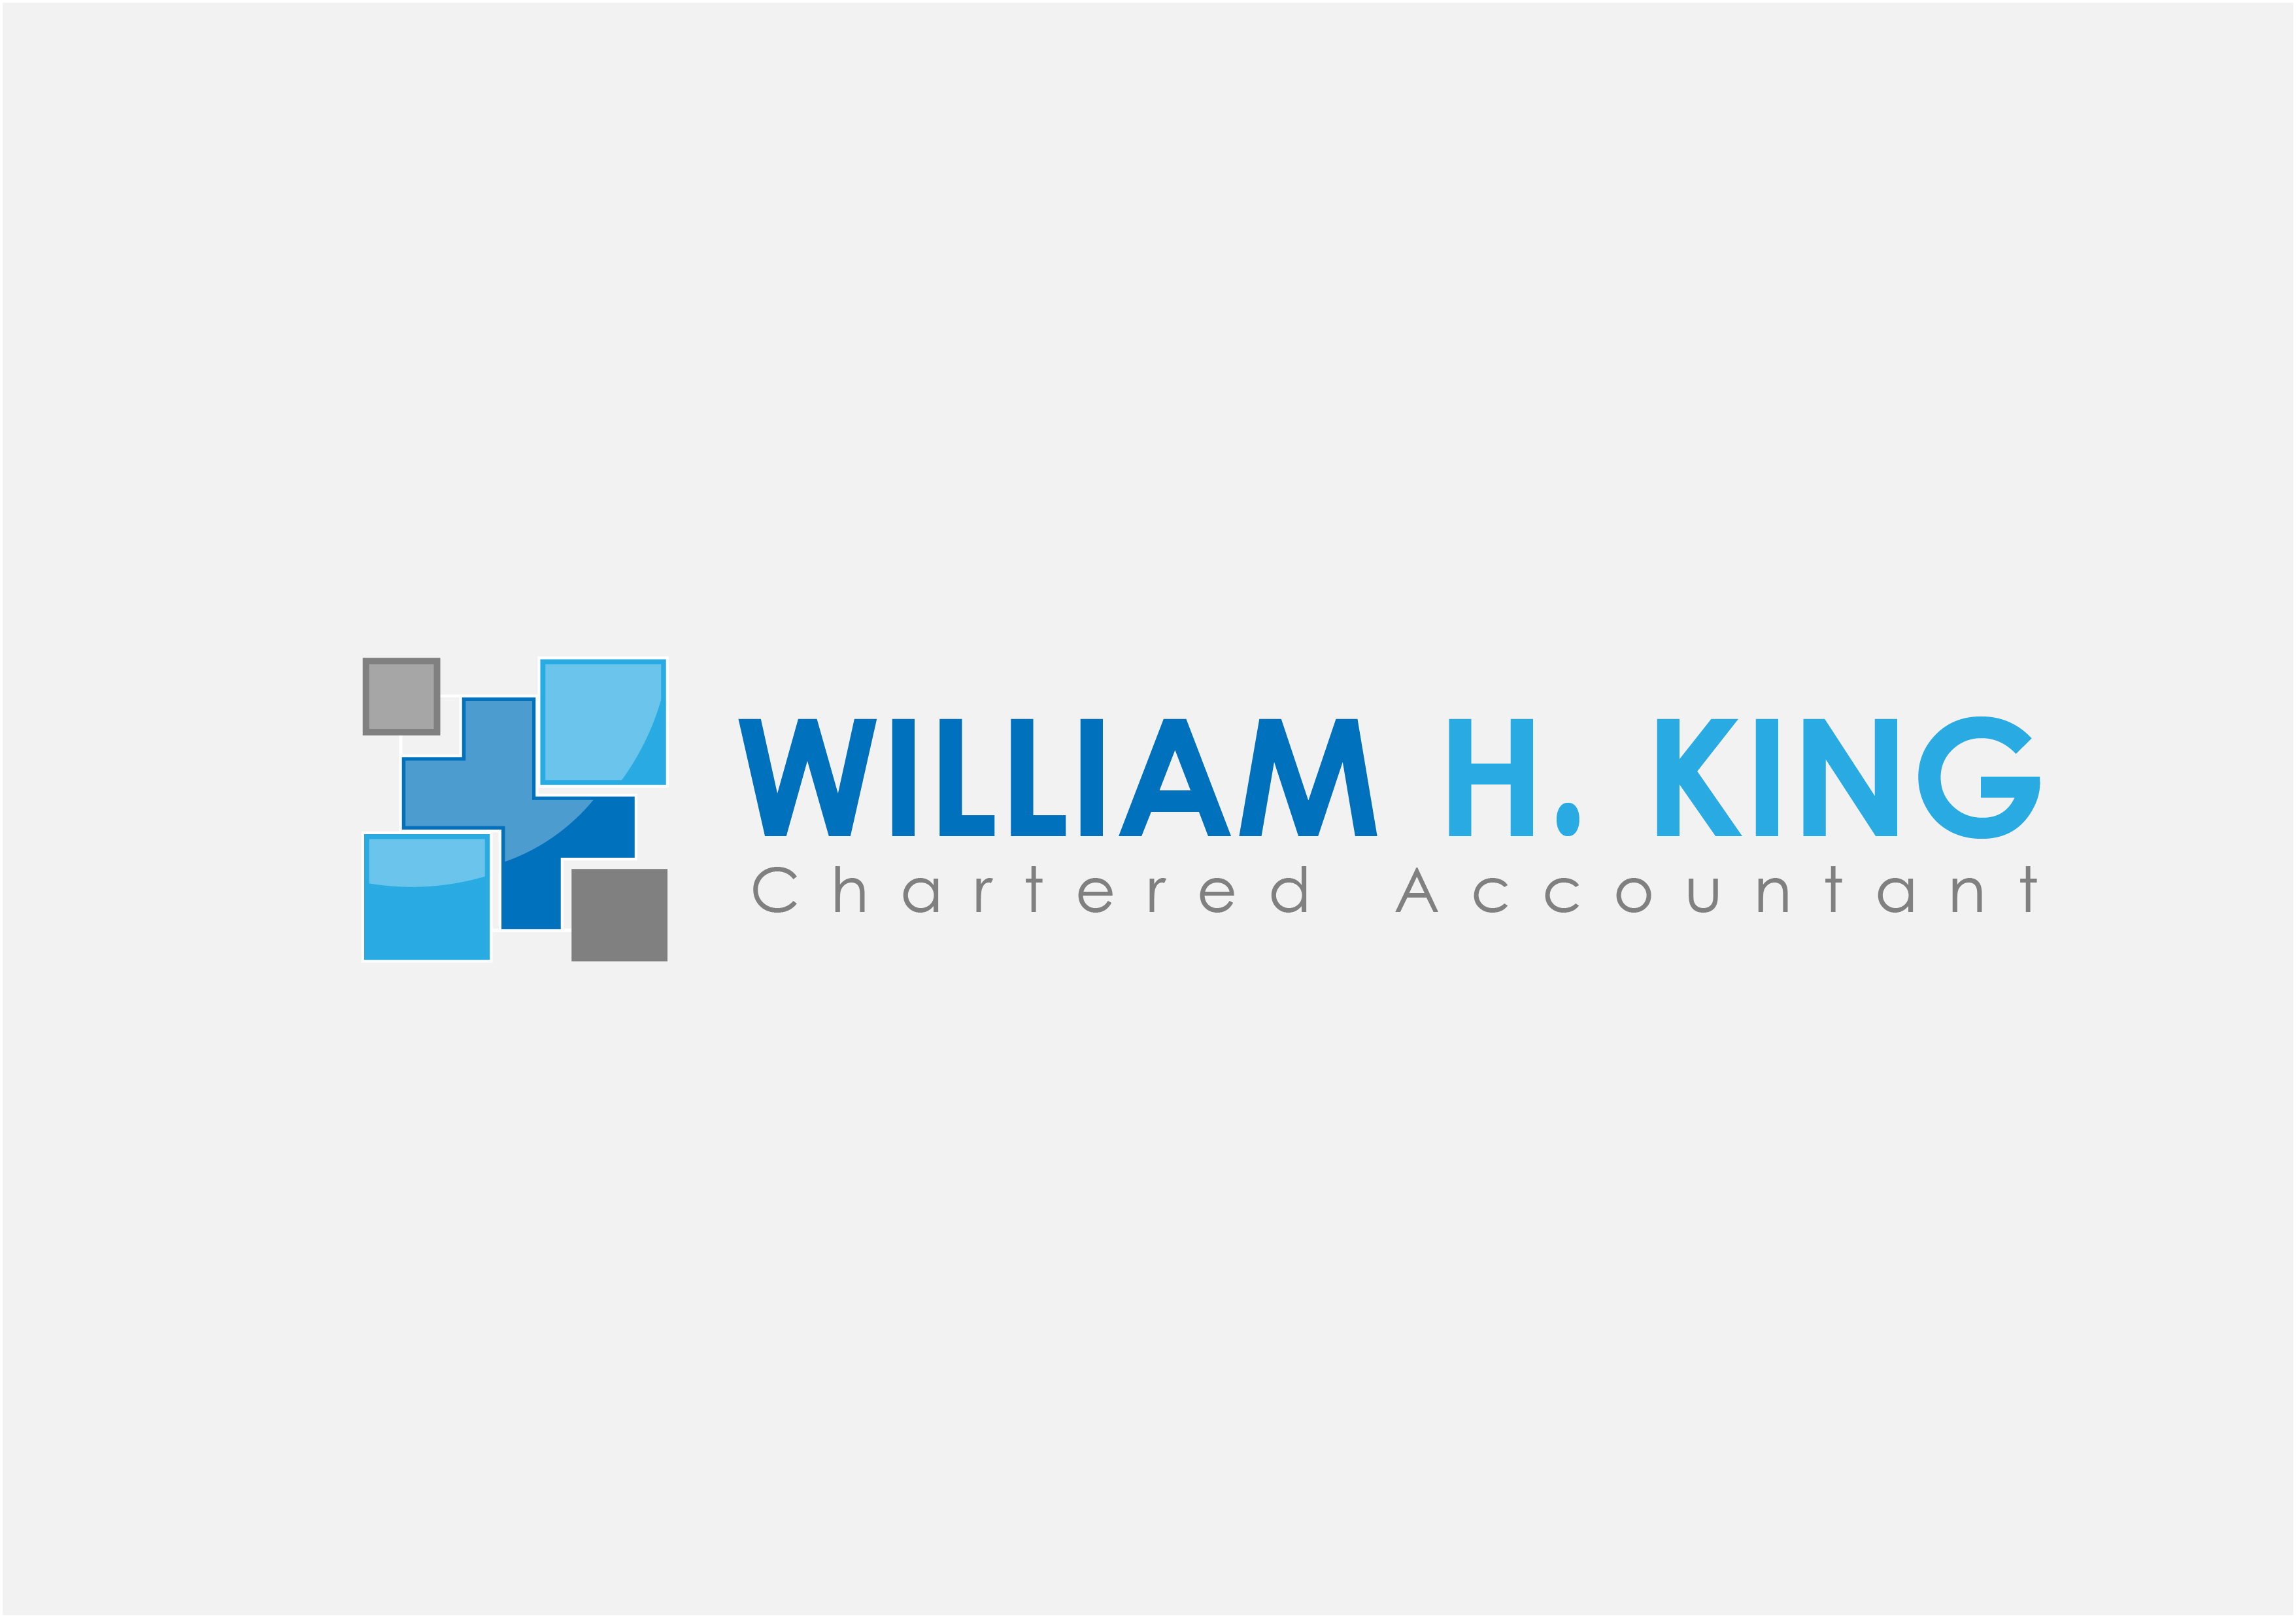 Logo Design by 3draw - Entry No. 18 in the Logo Design Contest New Logo Design for William H. King, Chartered Accountant.